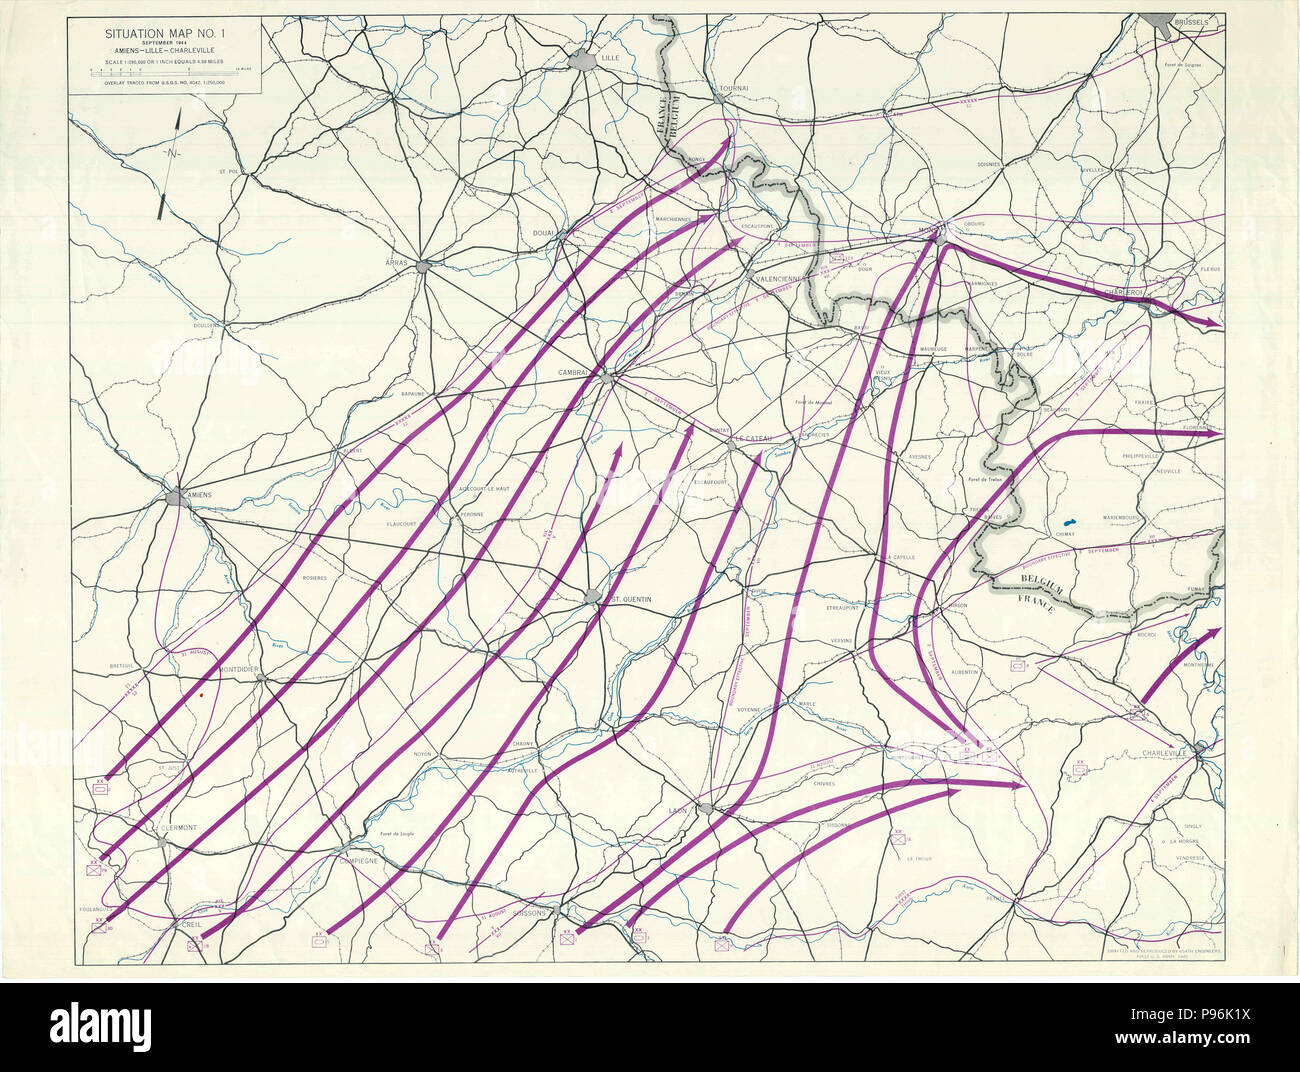 France World War Two Map - Situation Map No. 1 Amiens ...